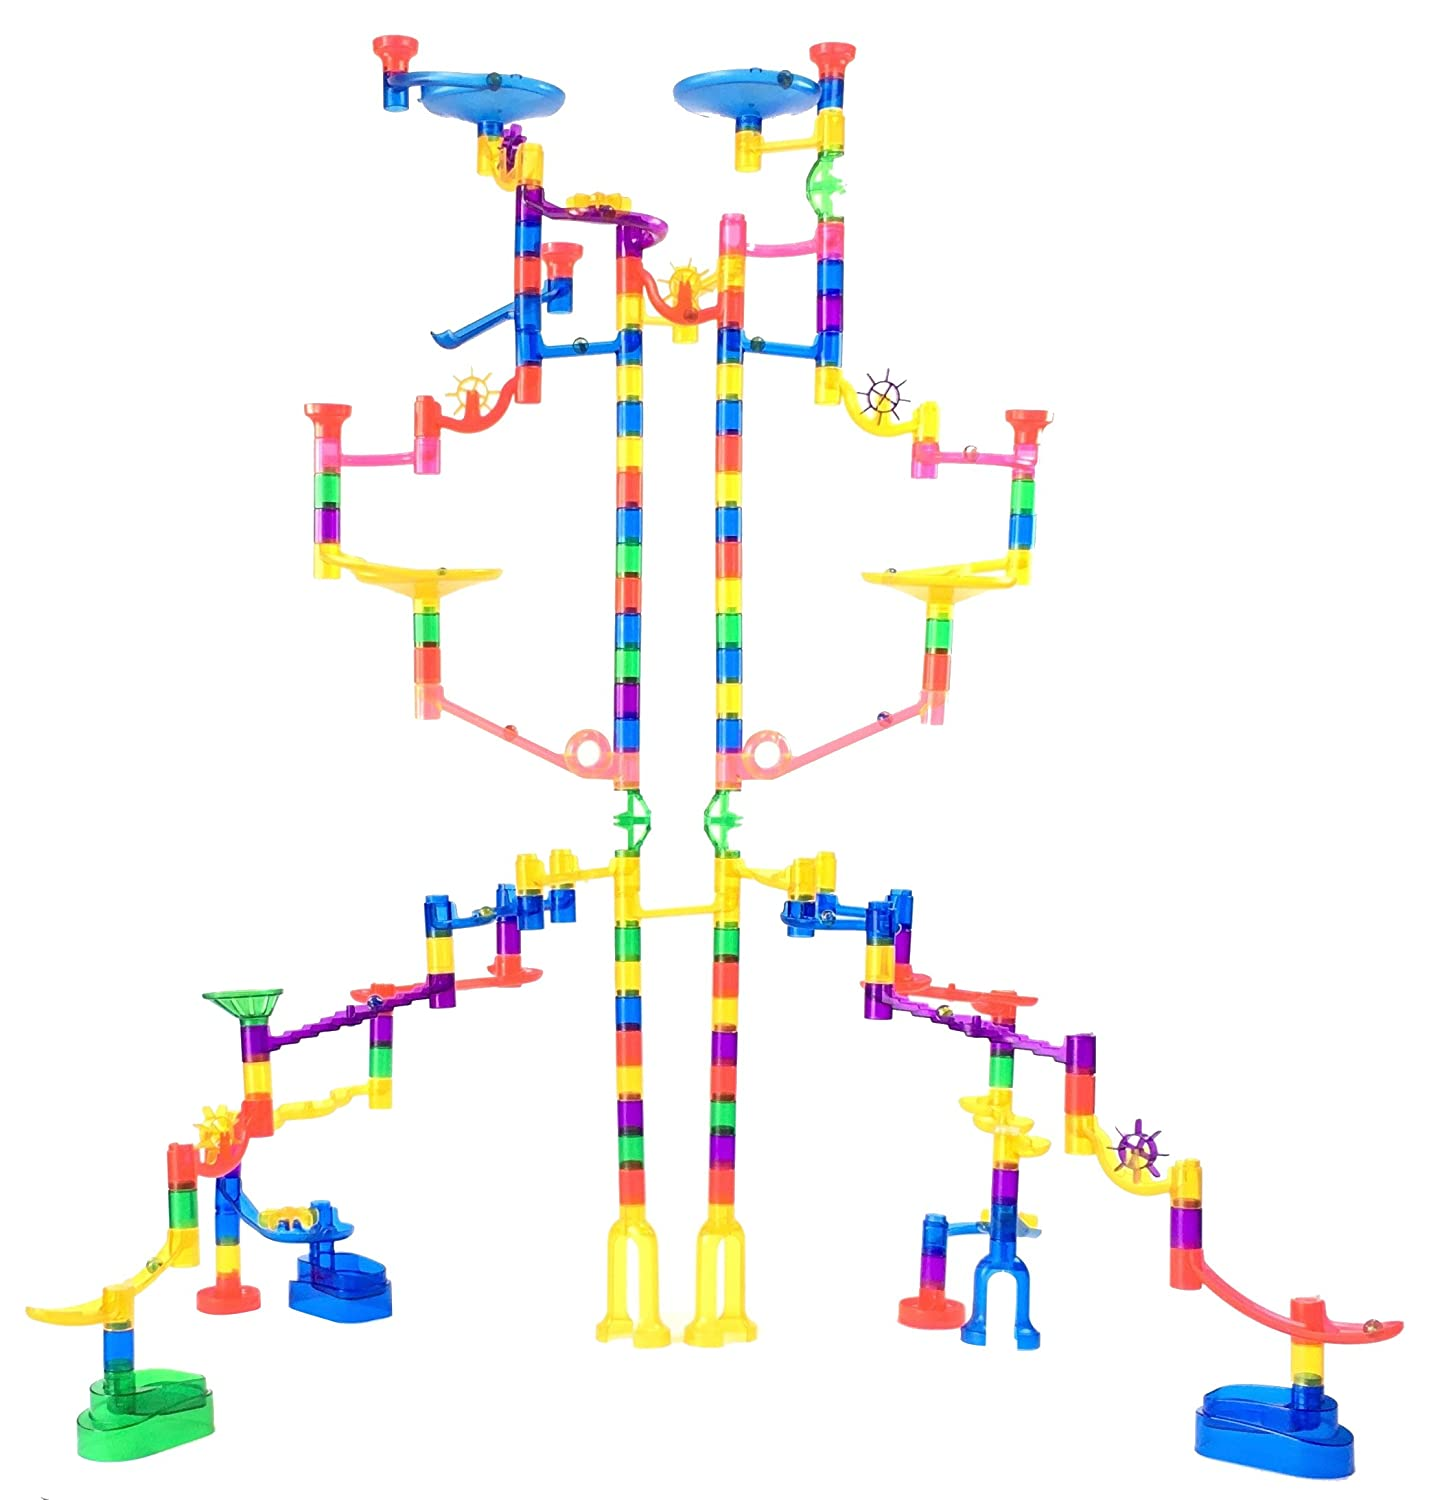 Marble Genius Marble Run Extreme Set - 125 Translucent Marbulous Pieces + 20 Glass Marbles Review